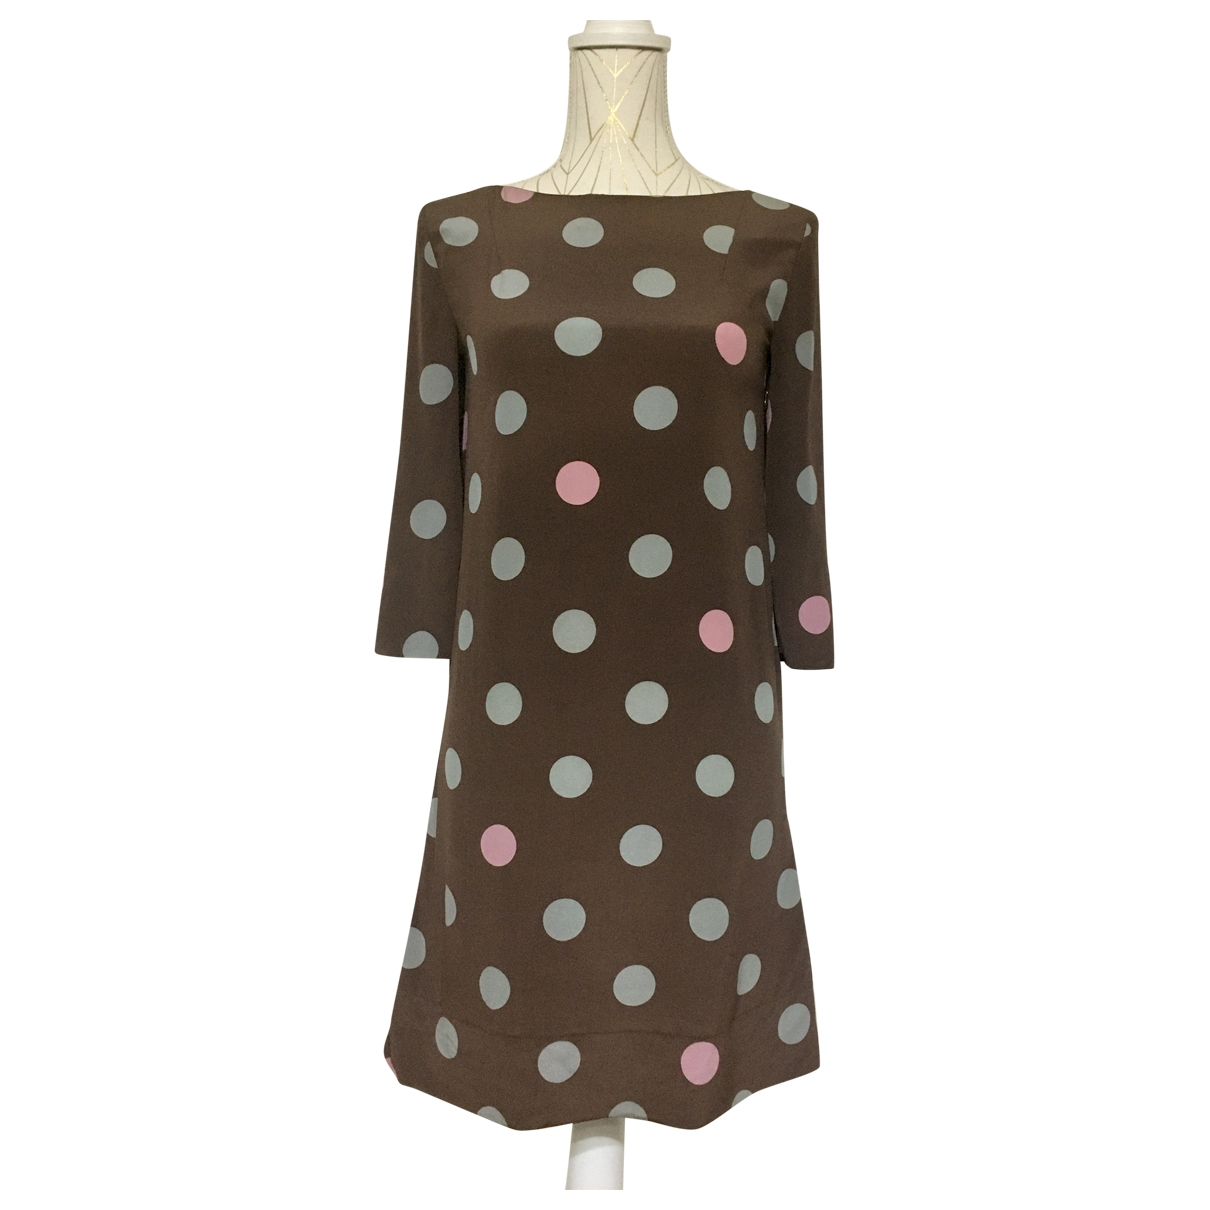 Marni \N Brown Silk dress for Women 38 IT